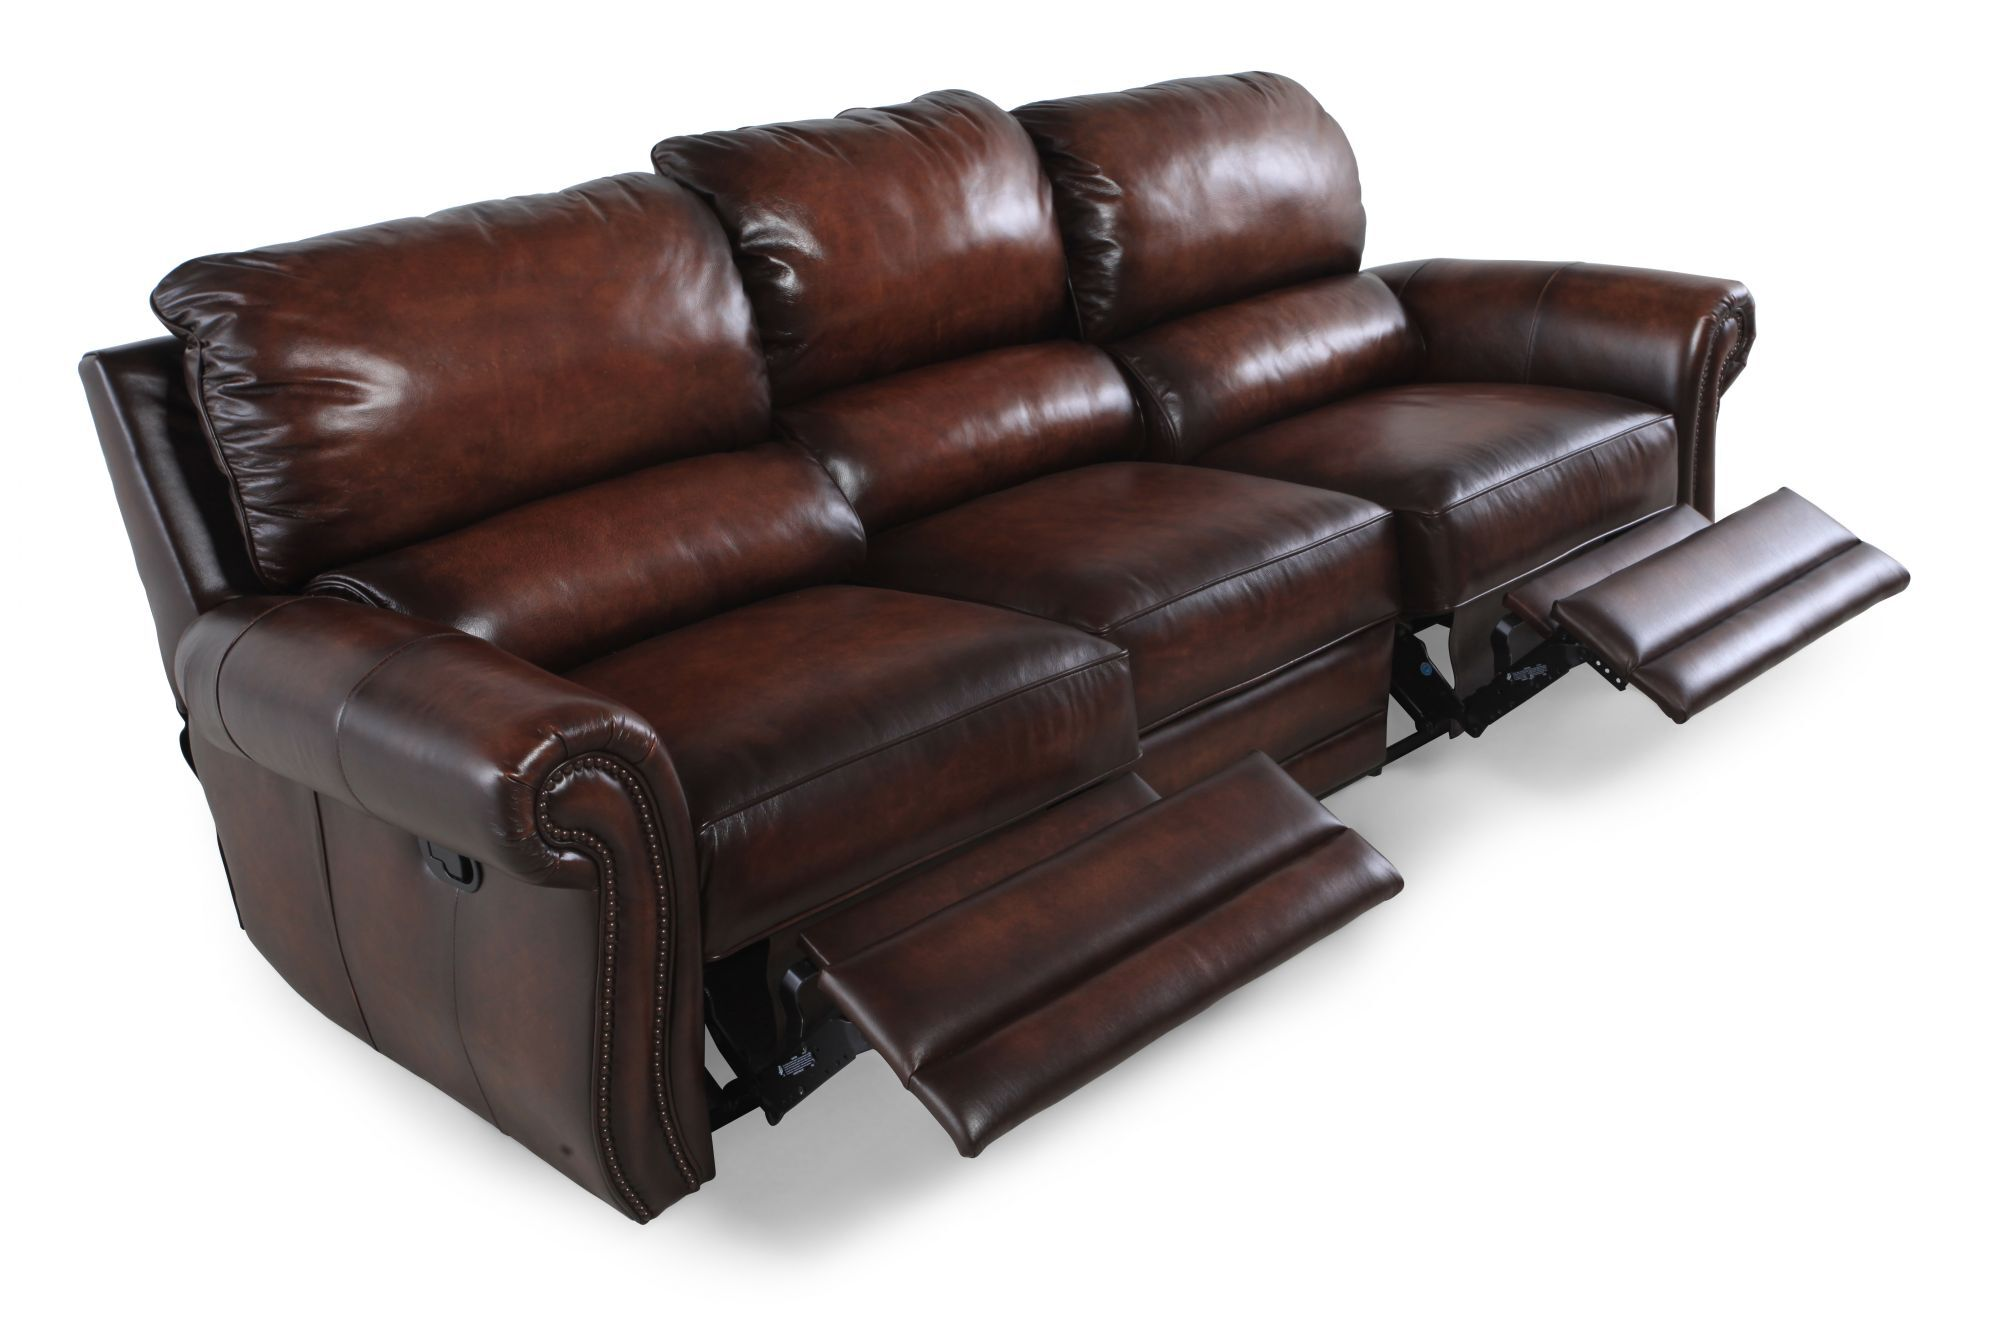 Genial Leather Wall Saver Reclining Sofa ...